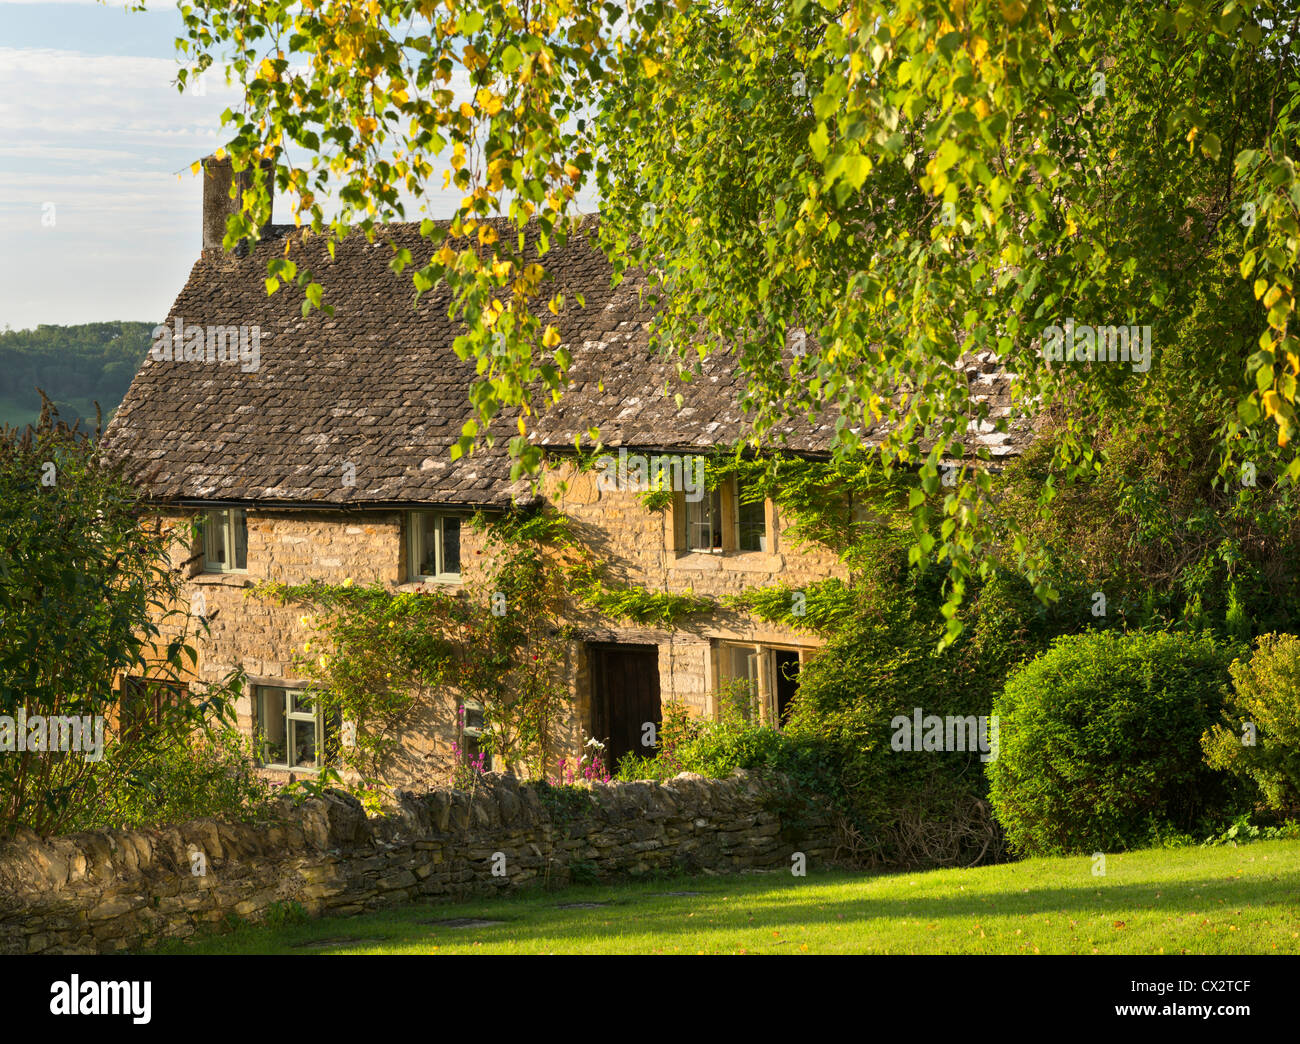 Pretty cottages in the Cotswolds village of Snowshill, Gloucestershire, England. September 2012. - Stock Image